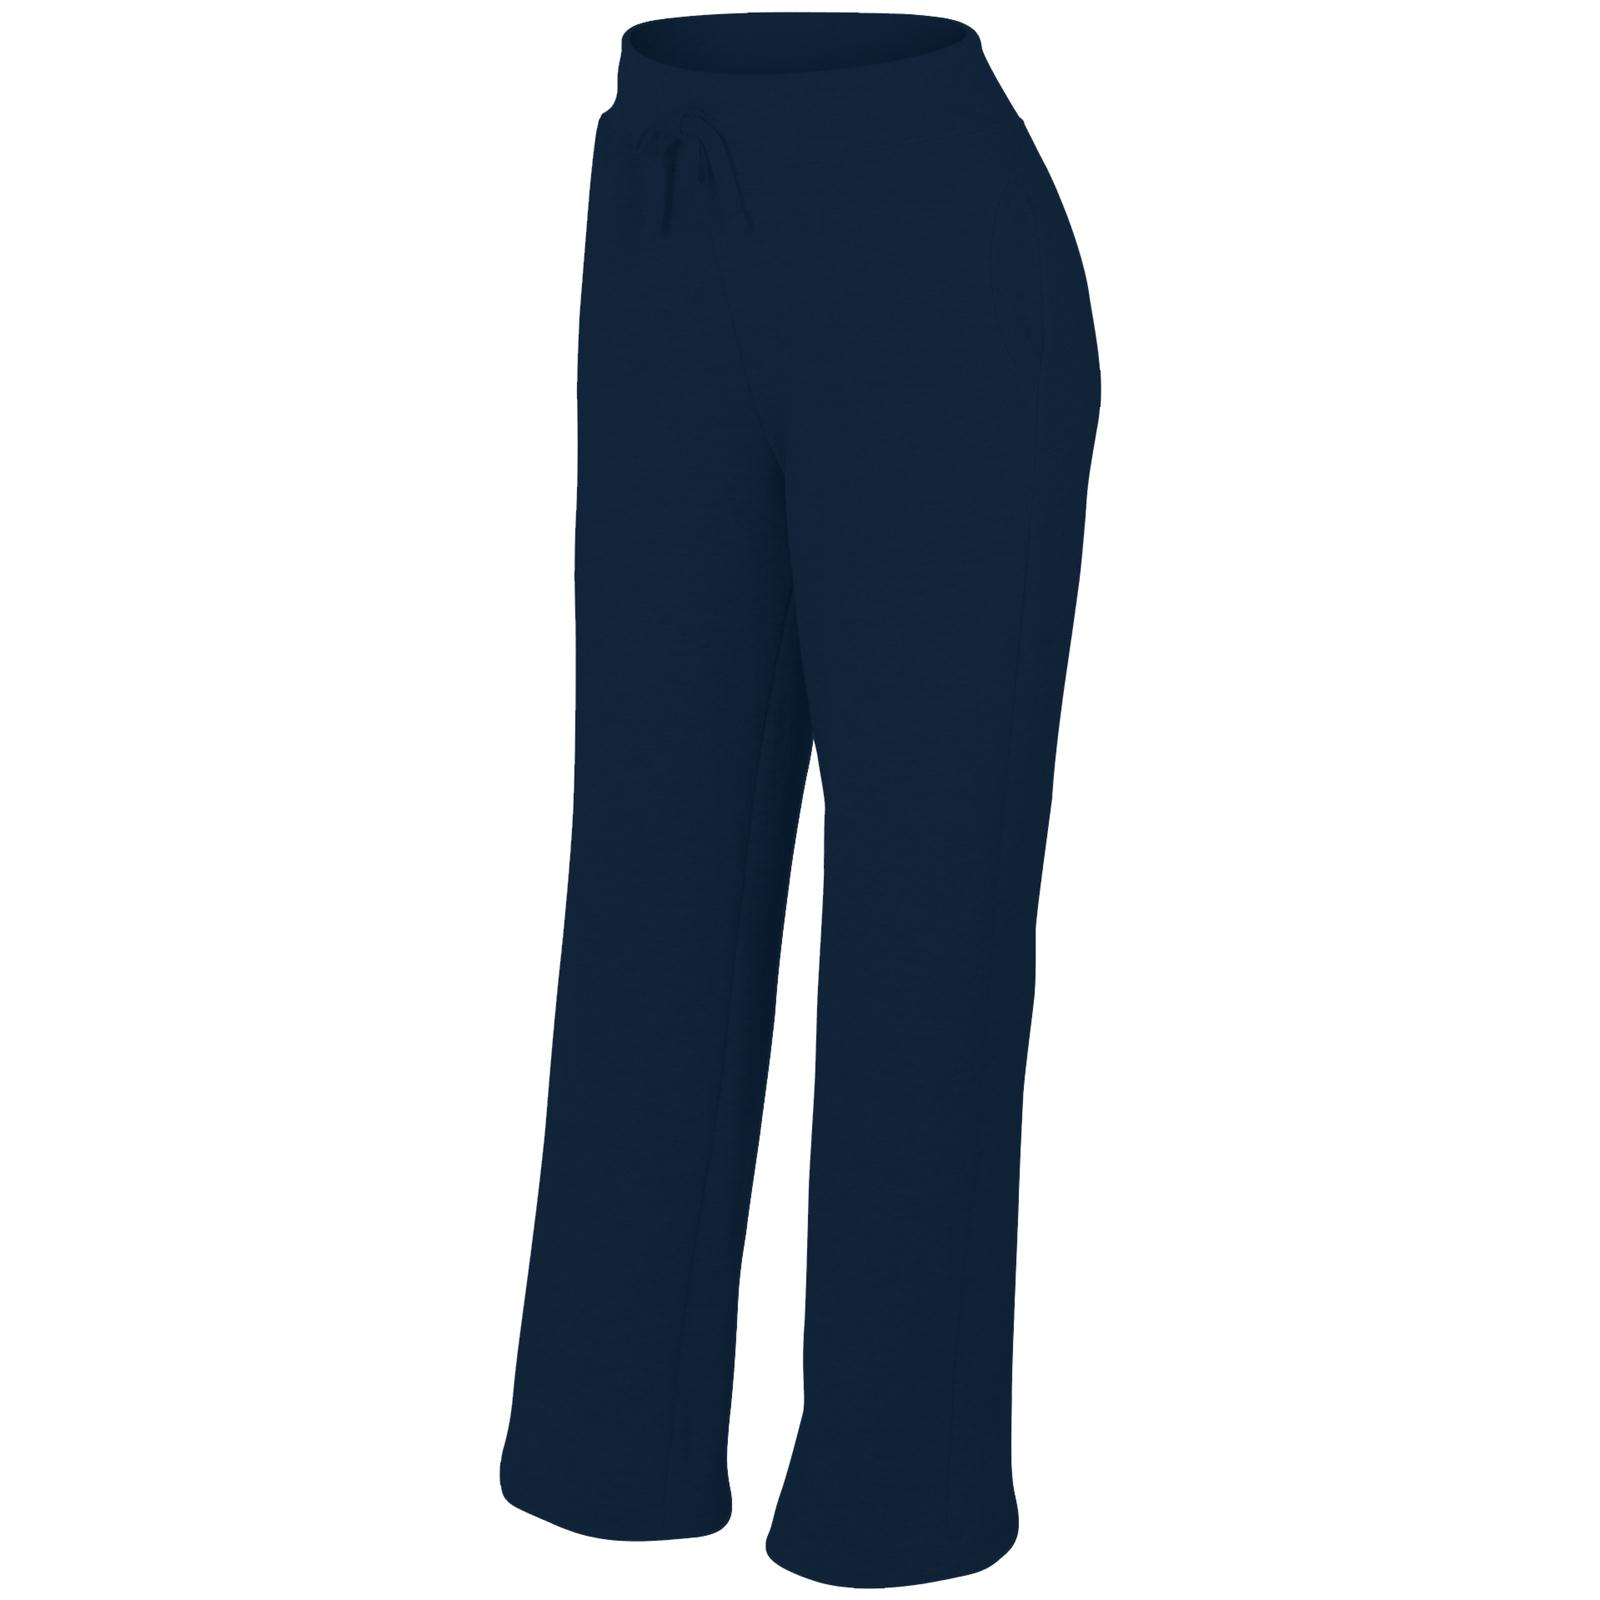 Shop for womens sweat pants online at Target. Free shipping on purchases over $35 and save 5% every day with your Target REDcard.